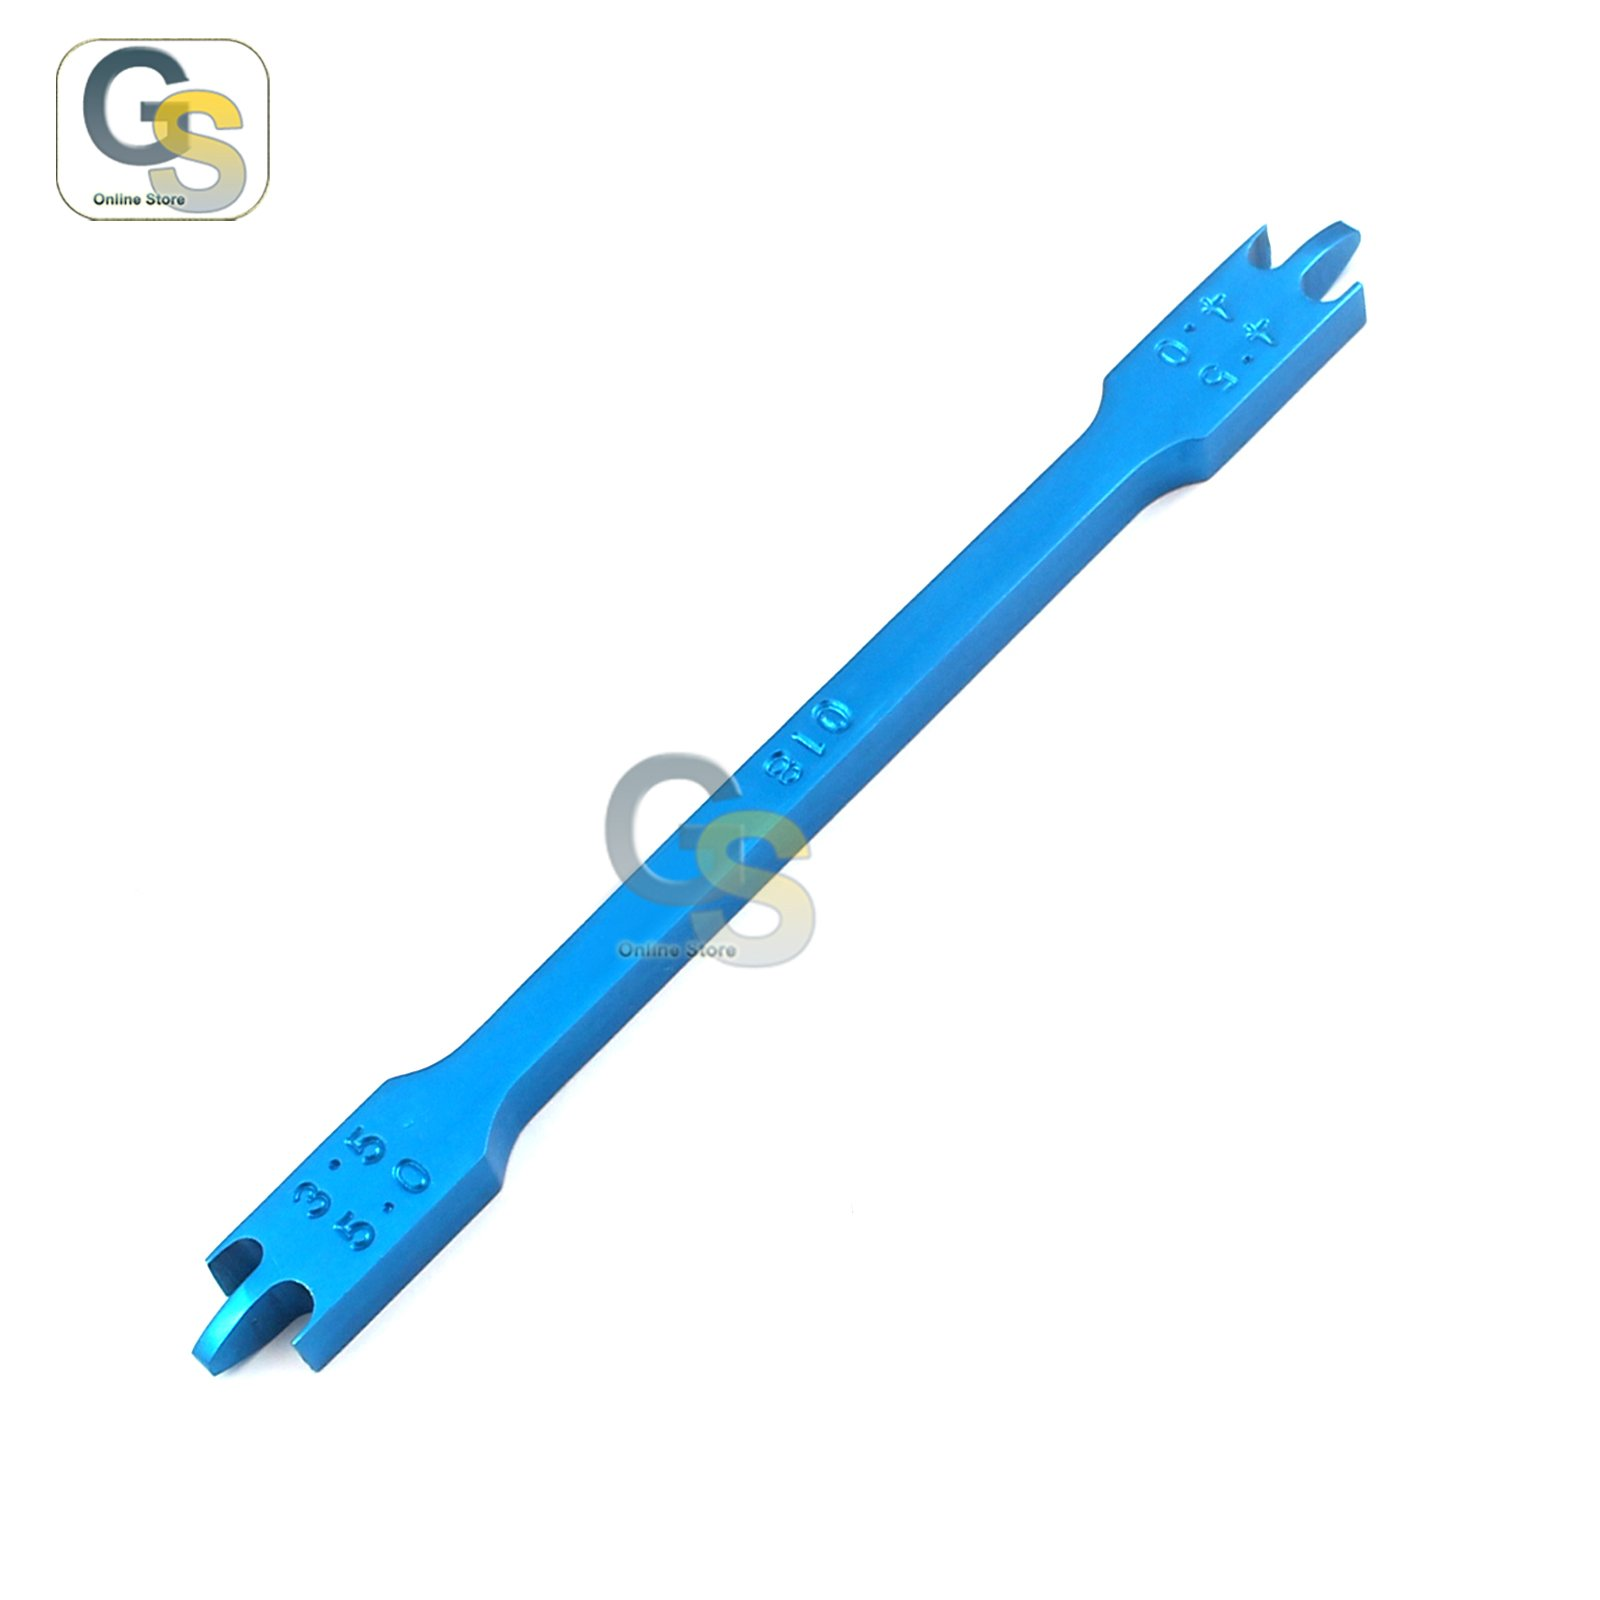 G.S BRACKET HEIGHT GAUGE BLUE COLOR 3.5MM-5MM018 ORTHODONTIC INSTRUMENTS BEST QUALITY